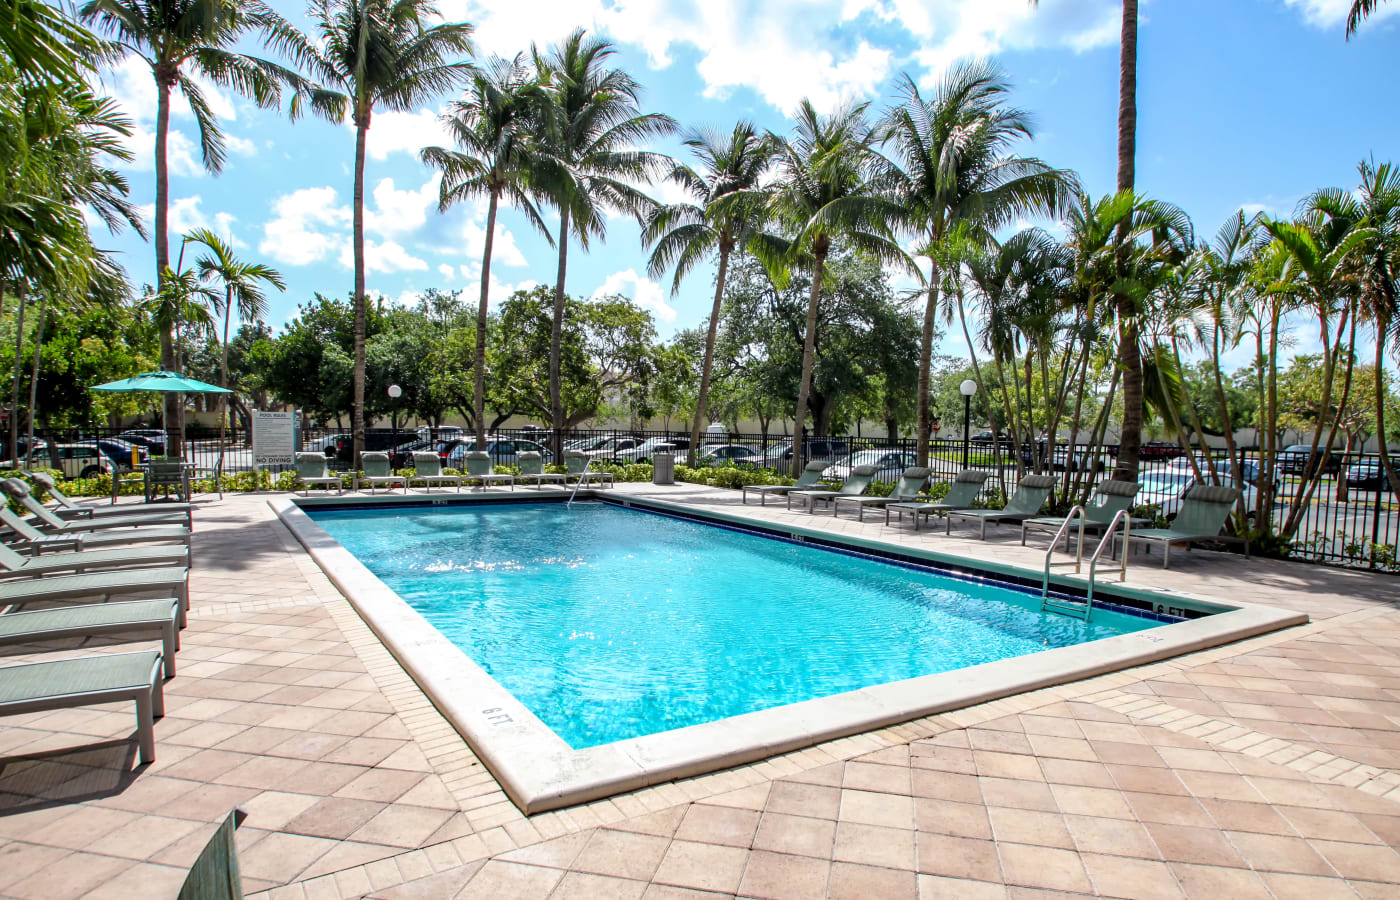 Beautiful sparkling swimming pool at Aliro in North Miami Beach, Florida